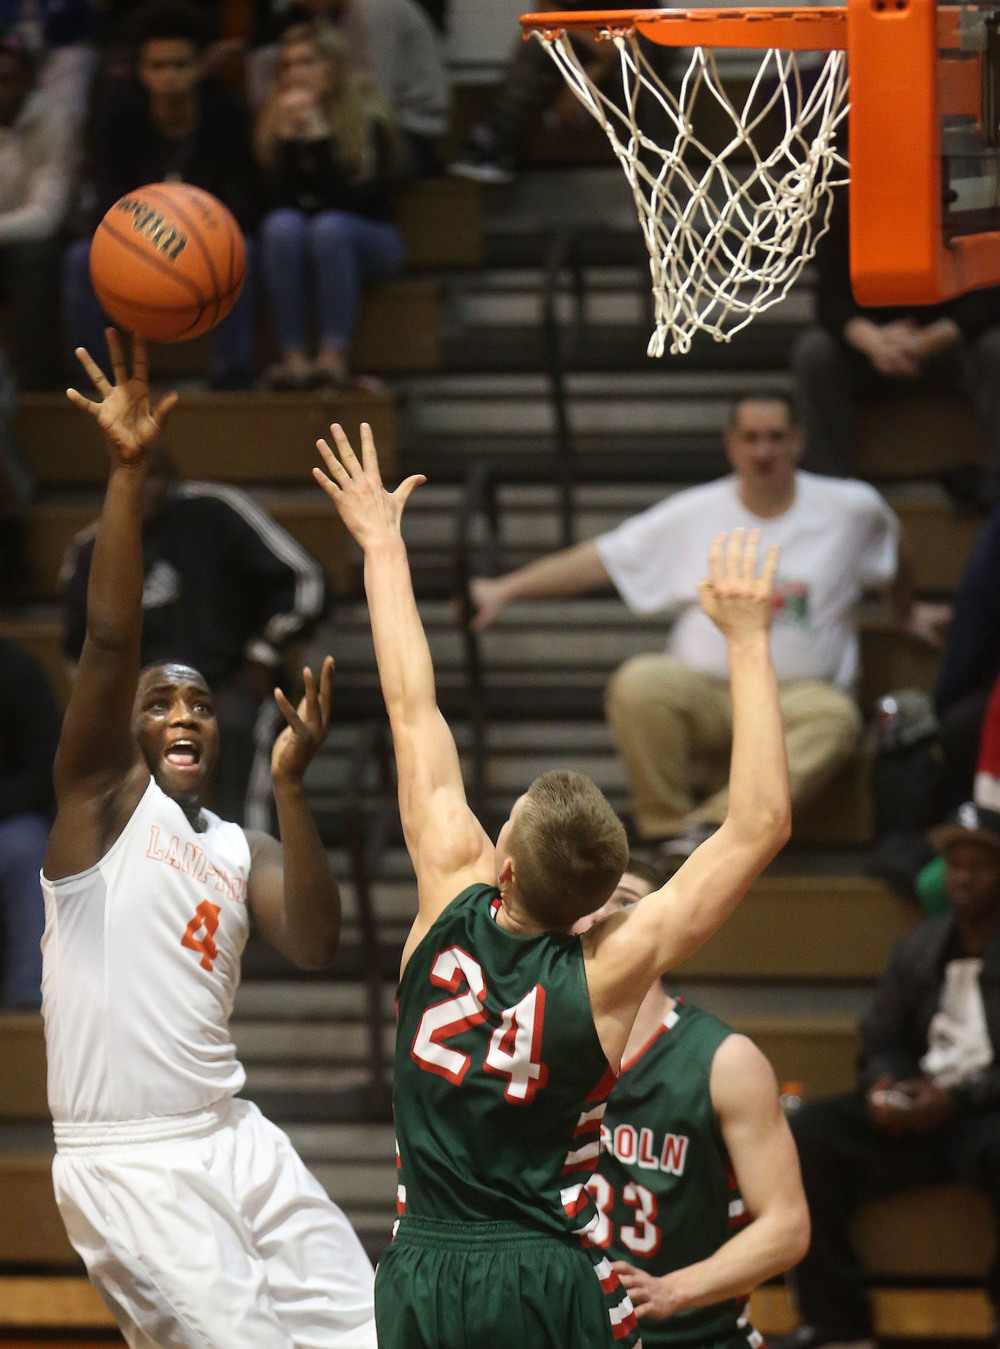 Lanphier's Corrington Jones shoots over Lincoln player Ben Grunder. David Spencer/The State Journal Register